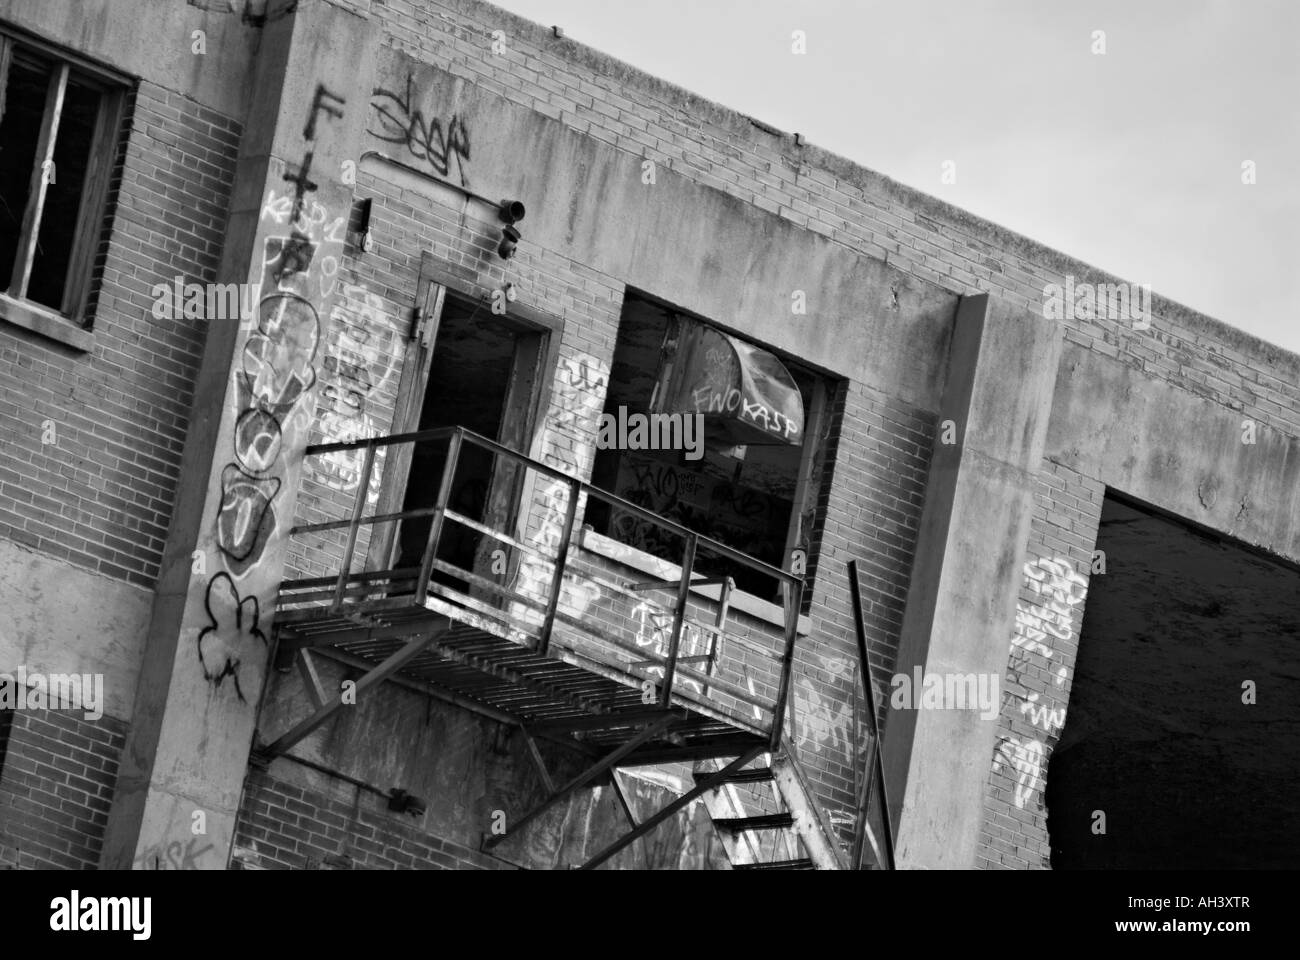 old abandoned building with graffiti in Fort Worth Texas black and white version - Stock Image